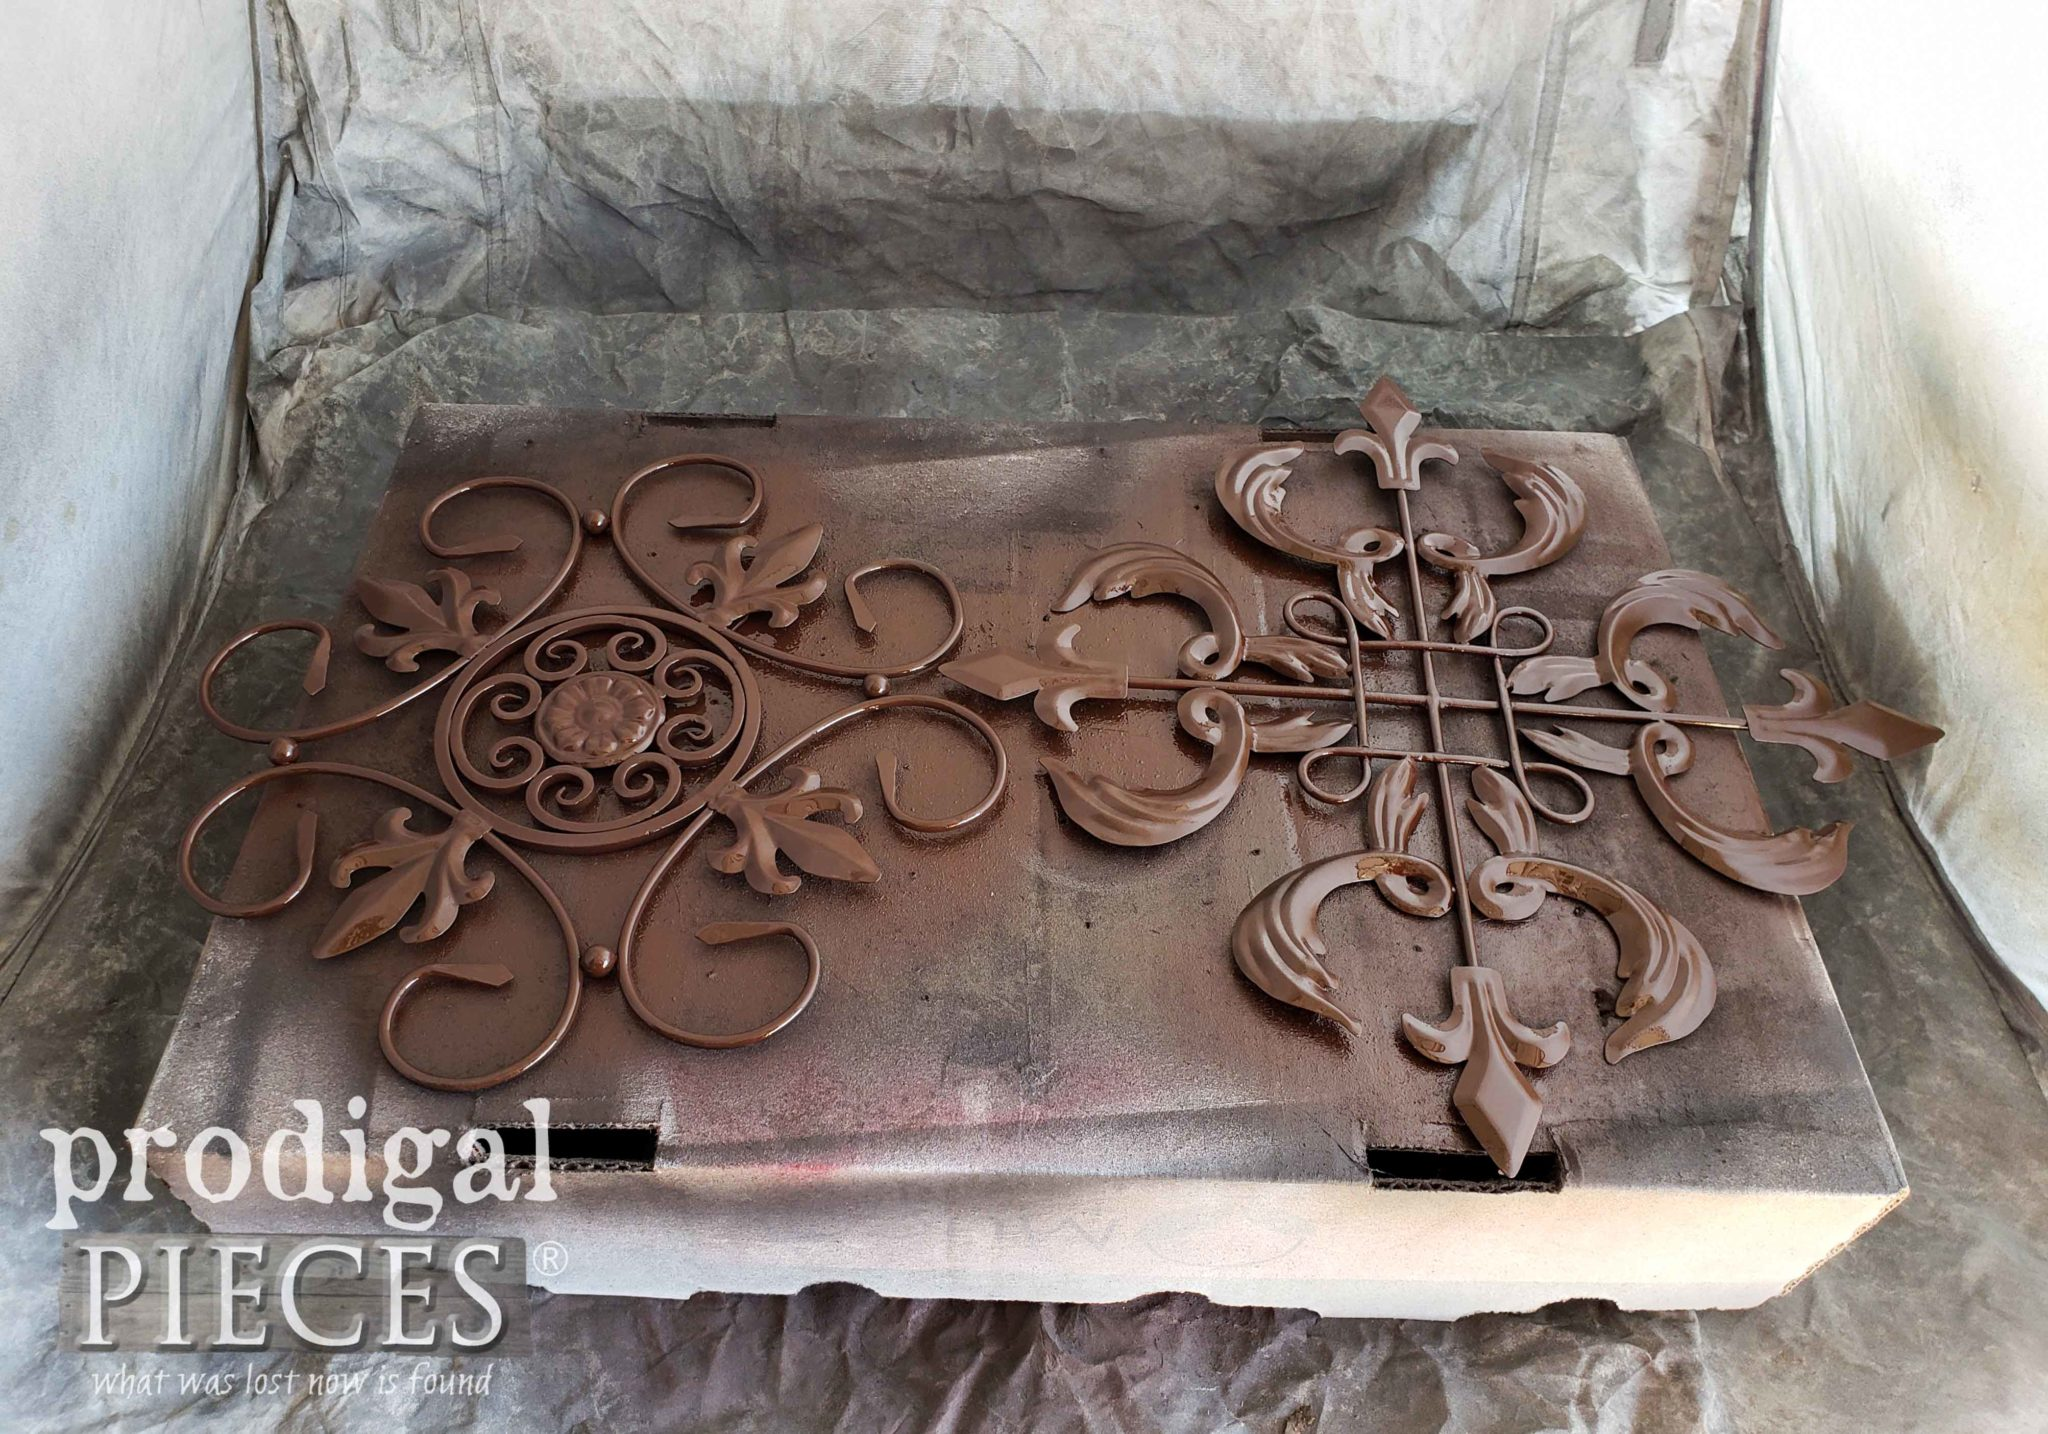 Spray Painted Metal Art for Farmhouse Wall Decor | prodigalpieces.com